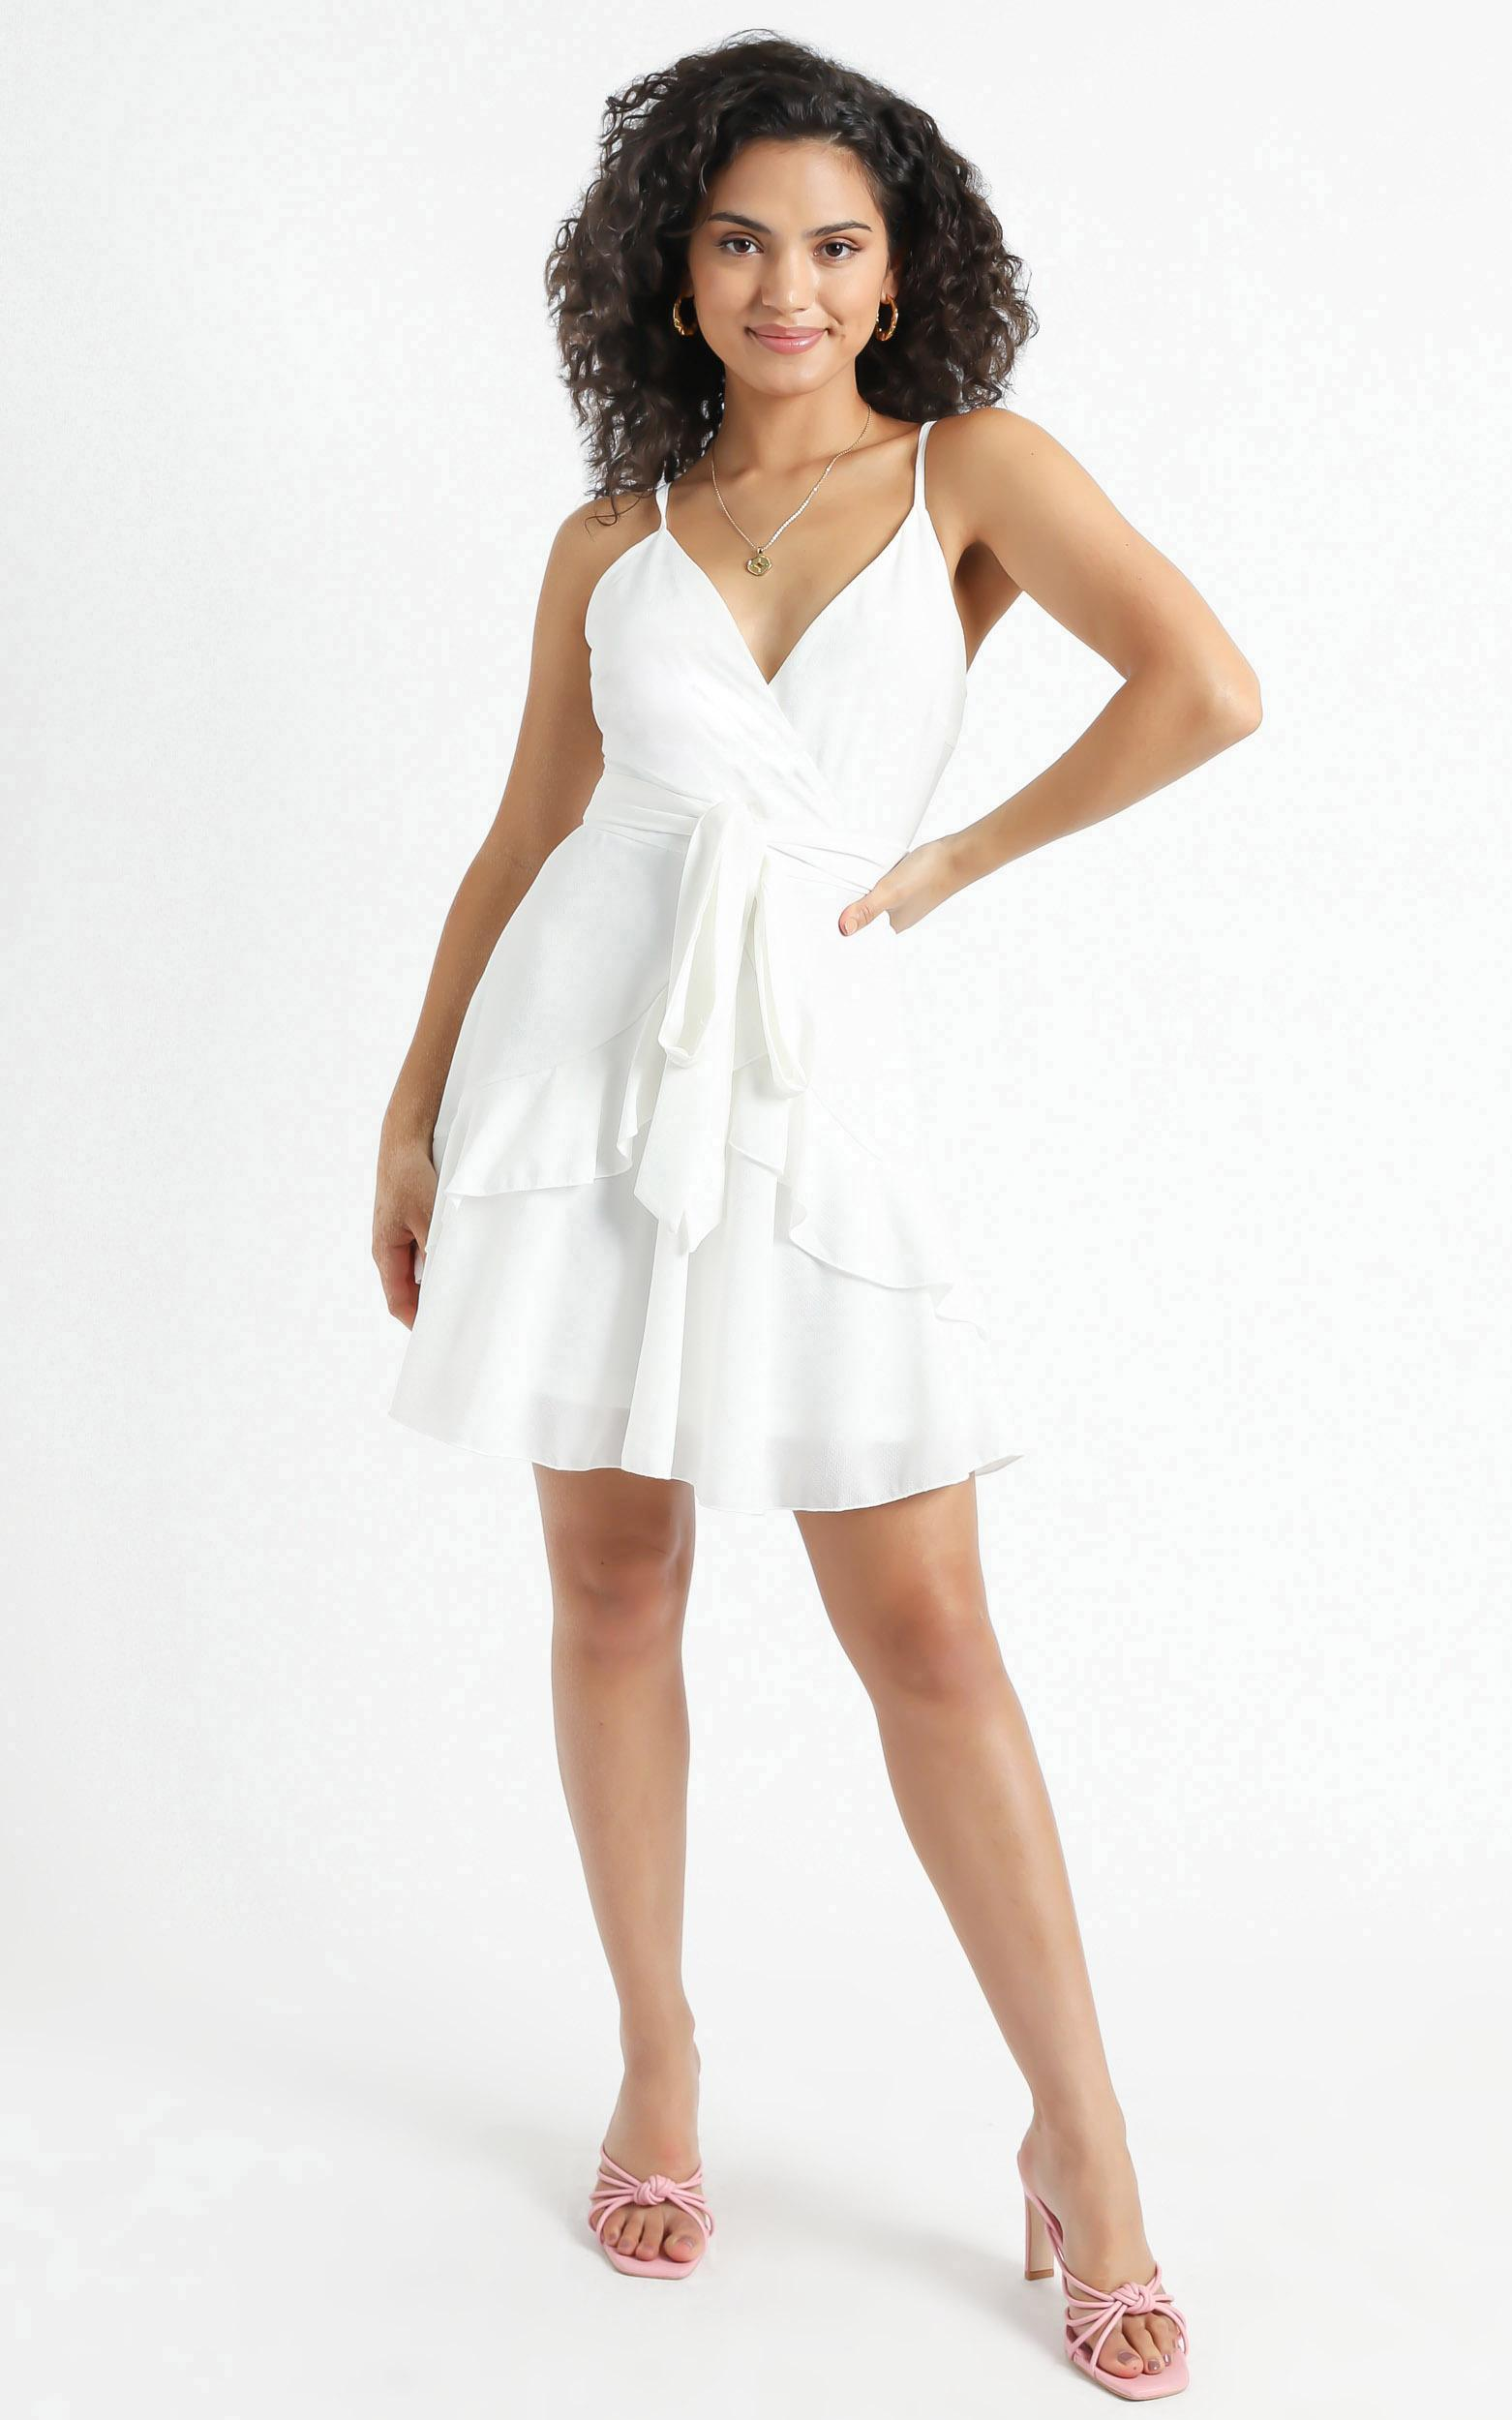 Feels Like Love Dress in White - 6 (XS), White, hi-res image number null